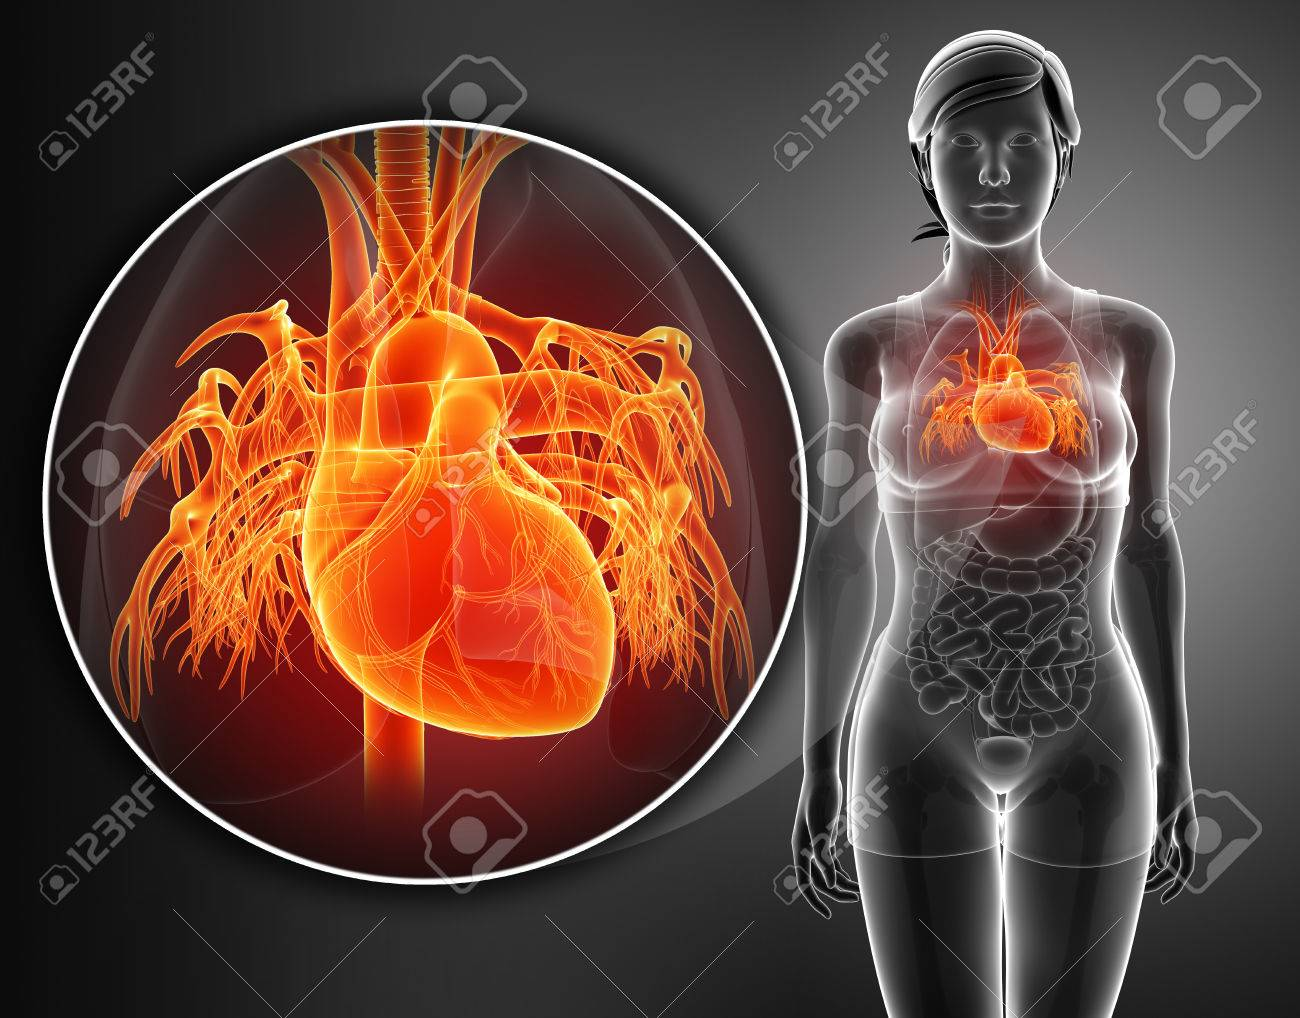 3d Render Of Human Heart Anatomy Stock Photo, Picture And Royalty ...